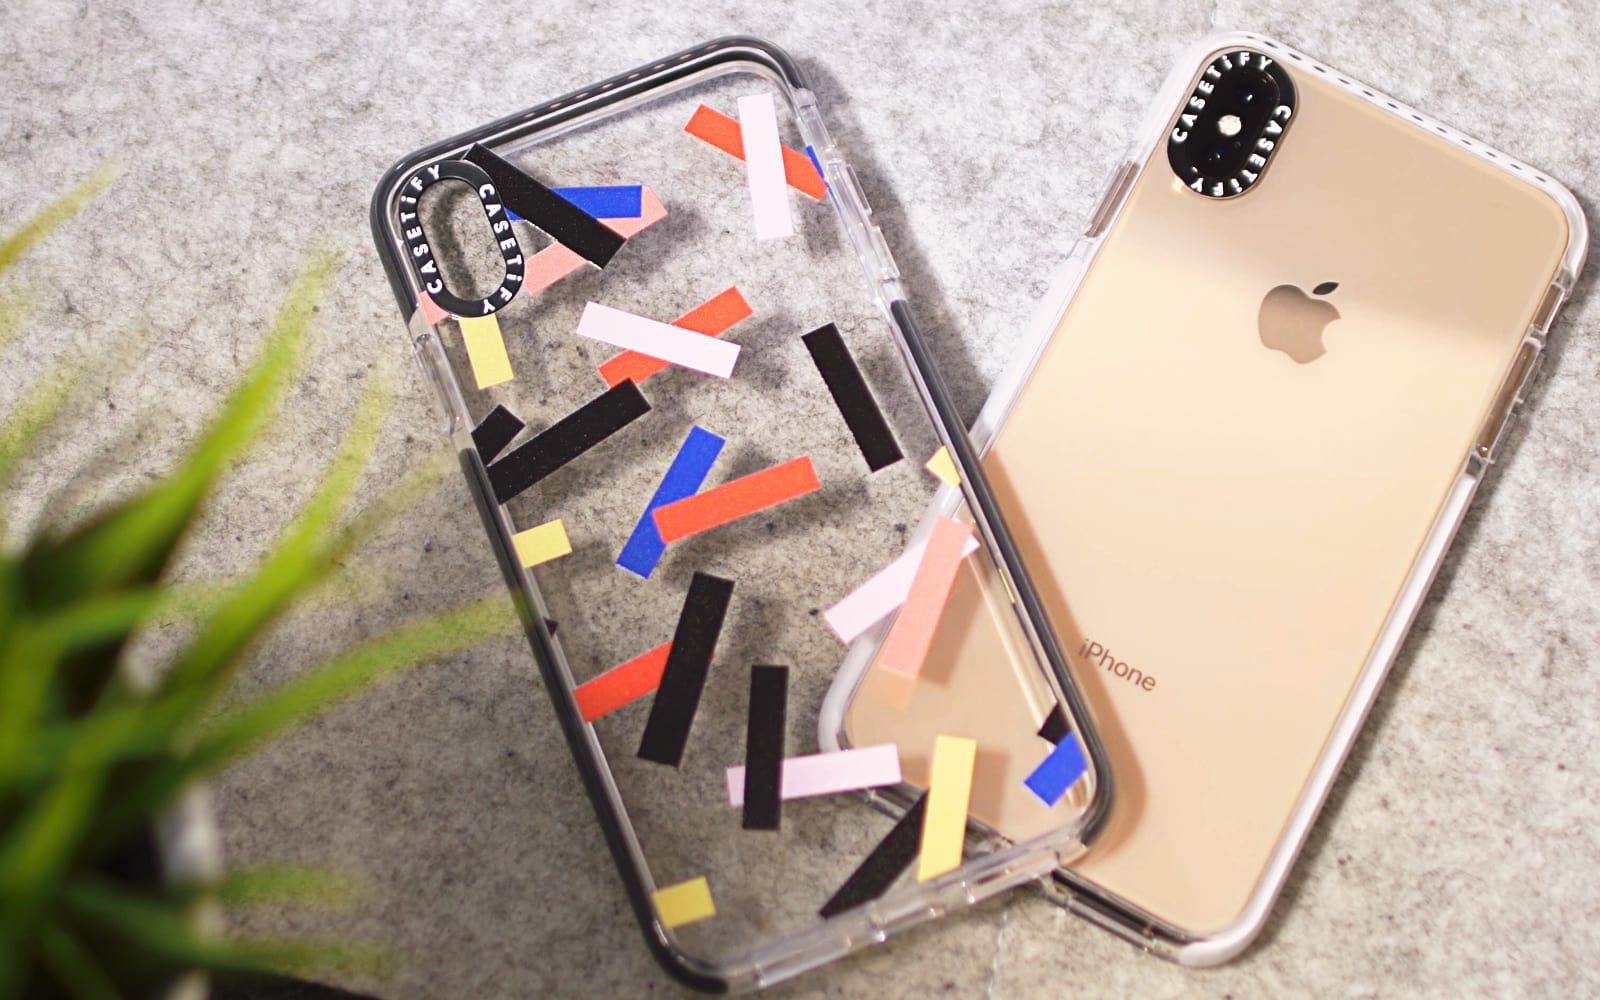 The Casetify Impact cases come in clear models as well as much more colorful options like Confetti.